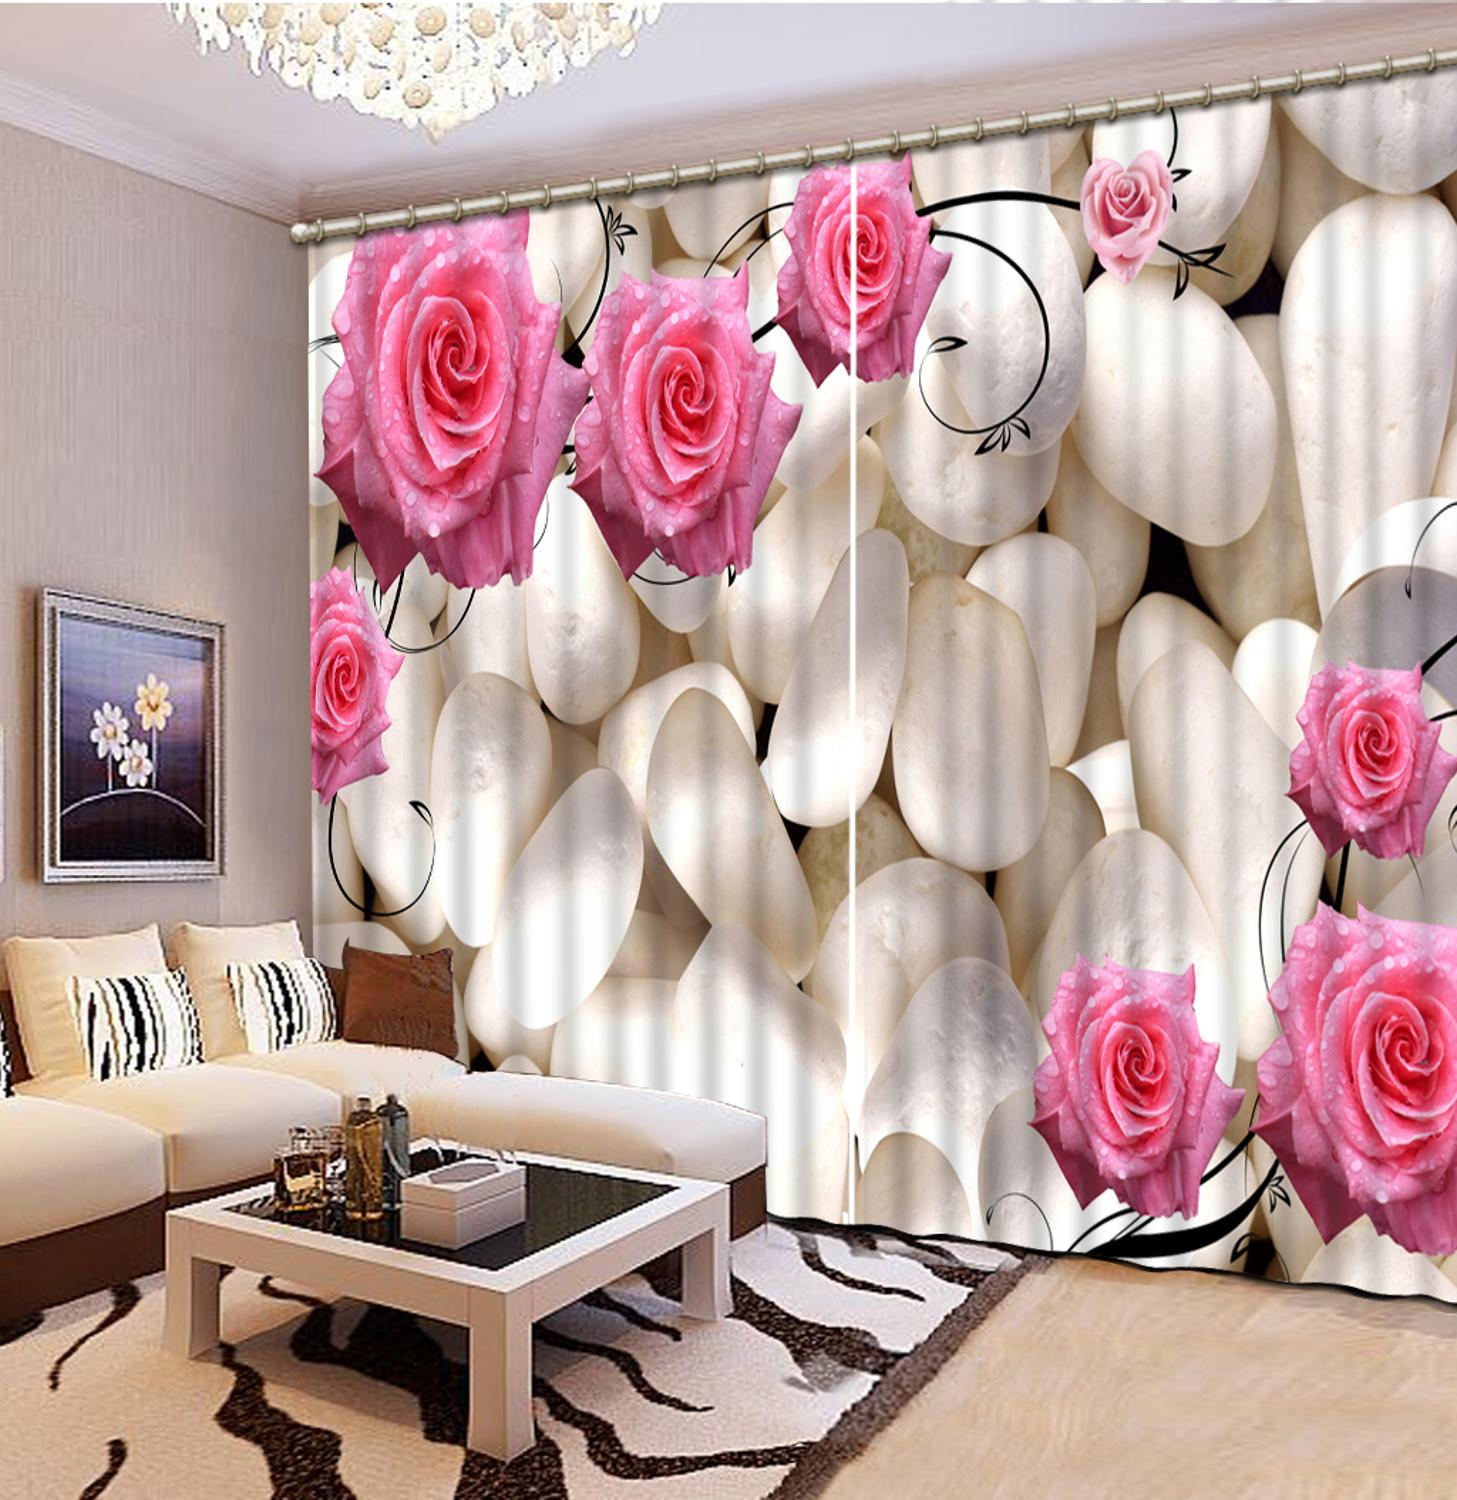 Customize European fashion curtains for living room bedroom Pebble flowers curtains home decorCustomize European fashion curtains for living room bedroom Pebble flowers curtains home decor